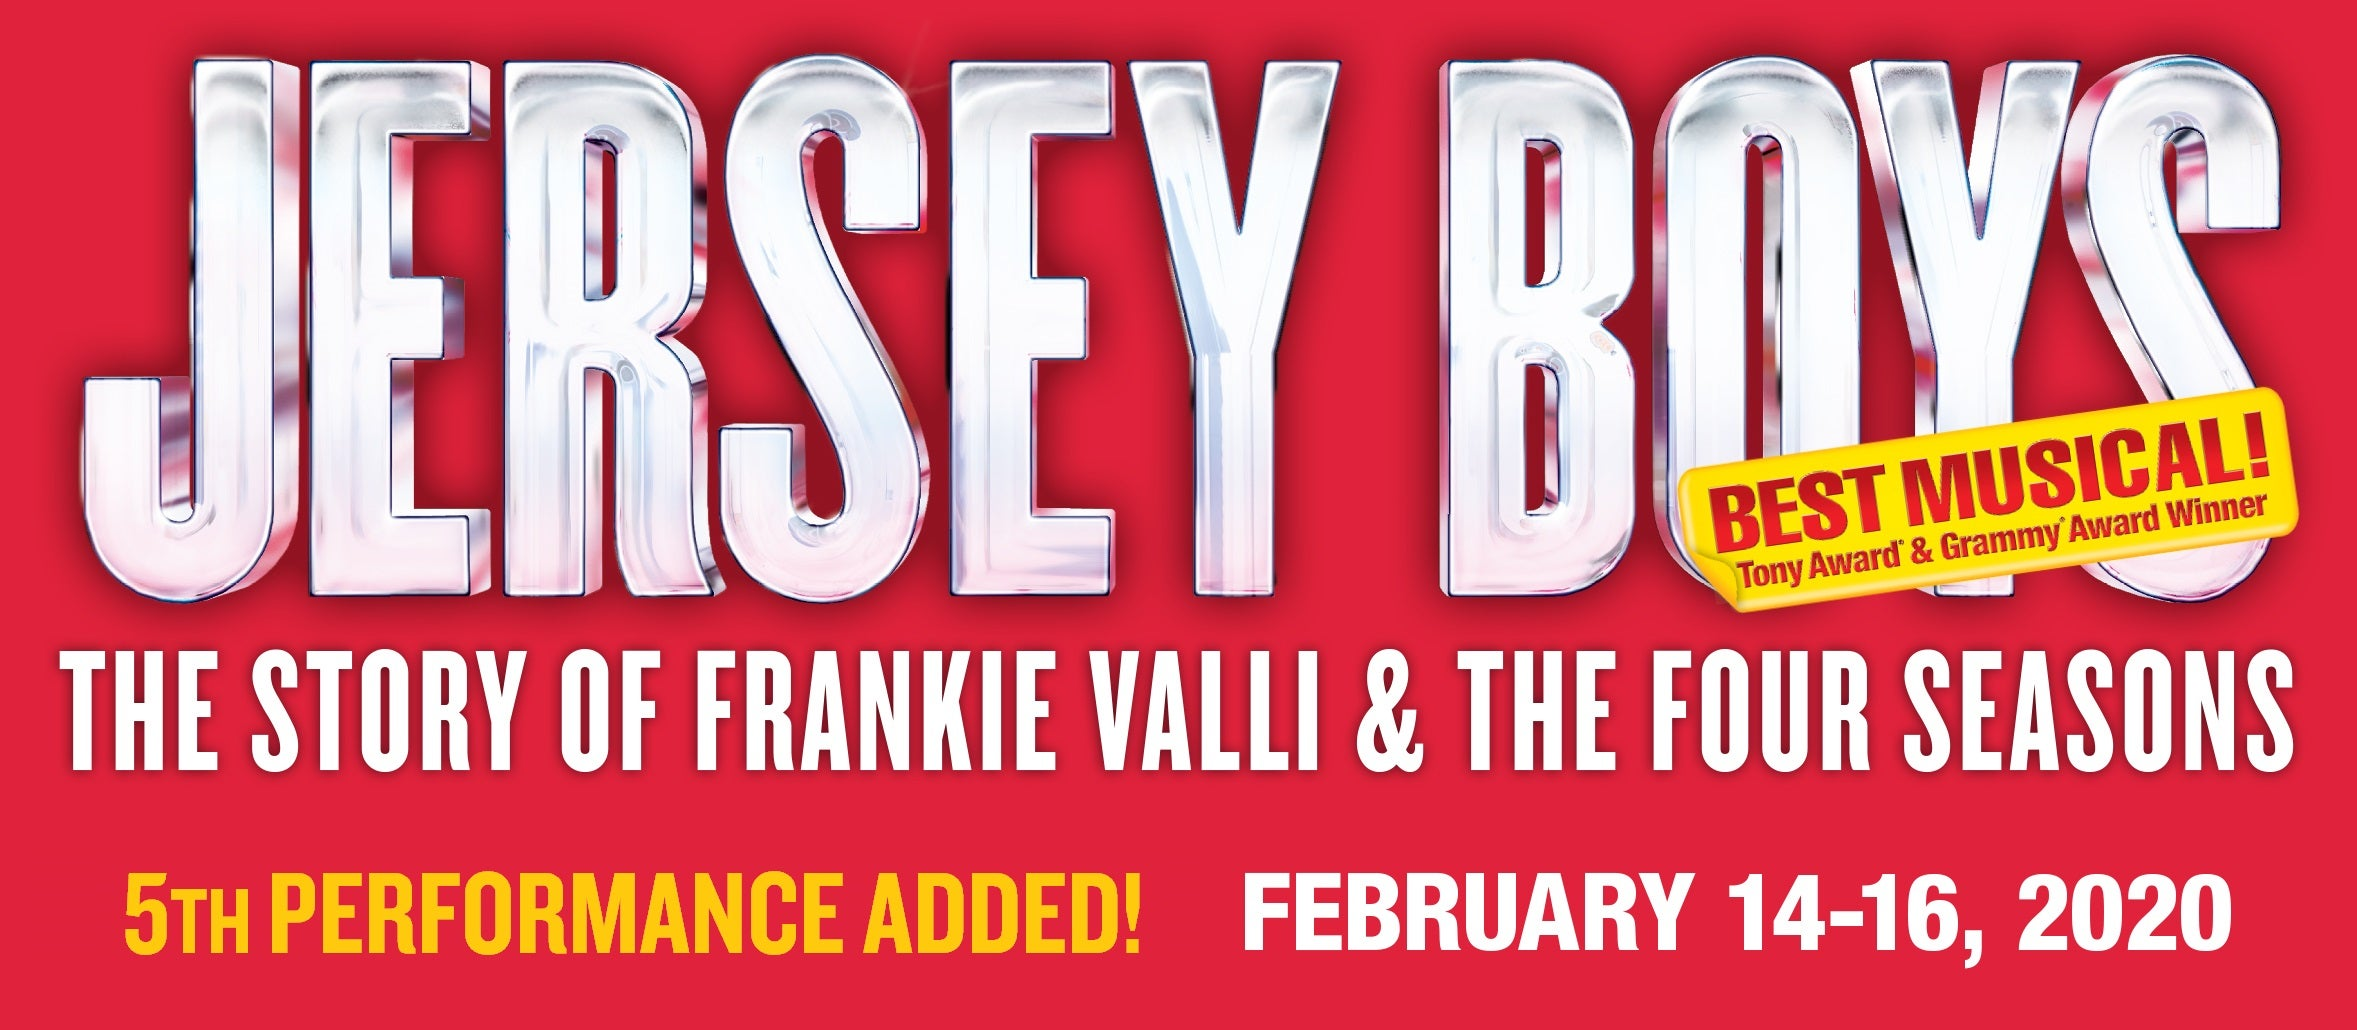 Jersey Boys home pg 5th show added 2020